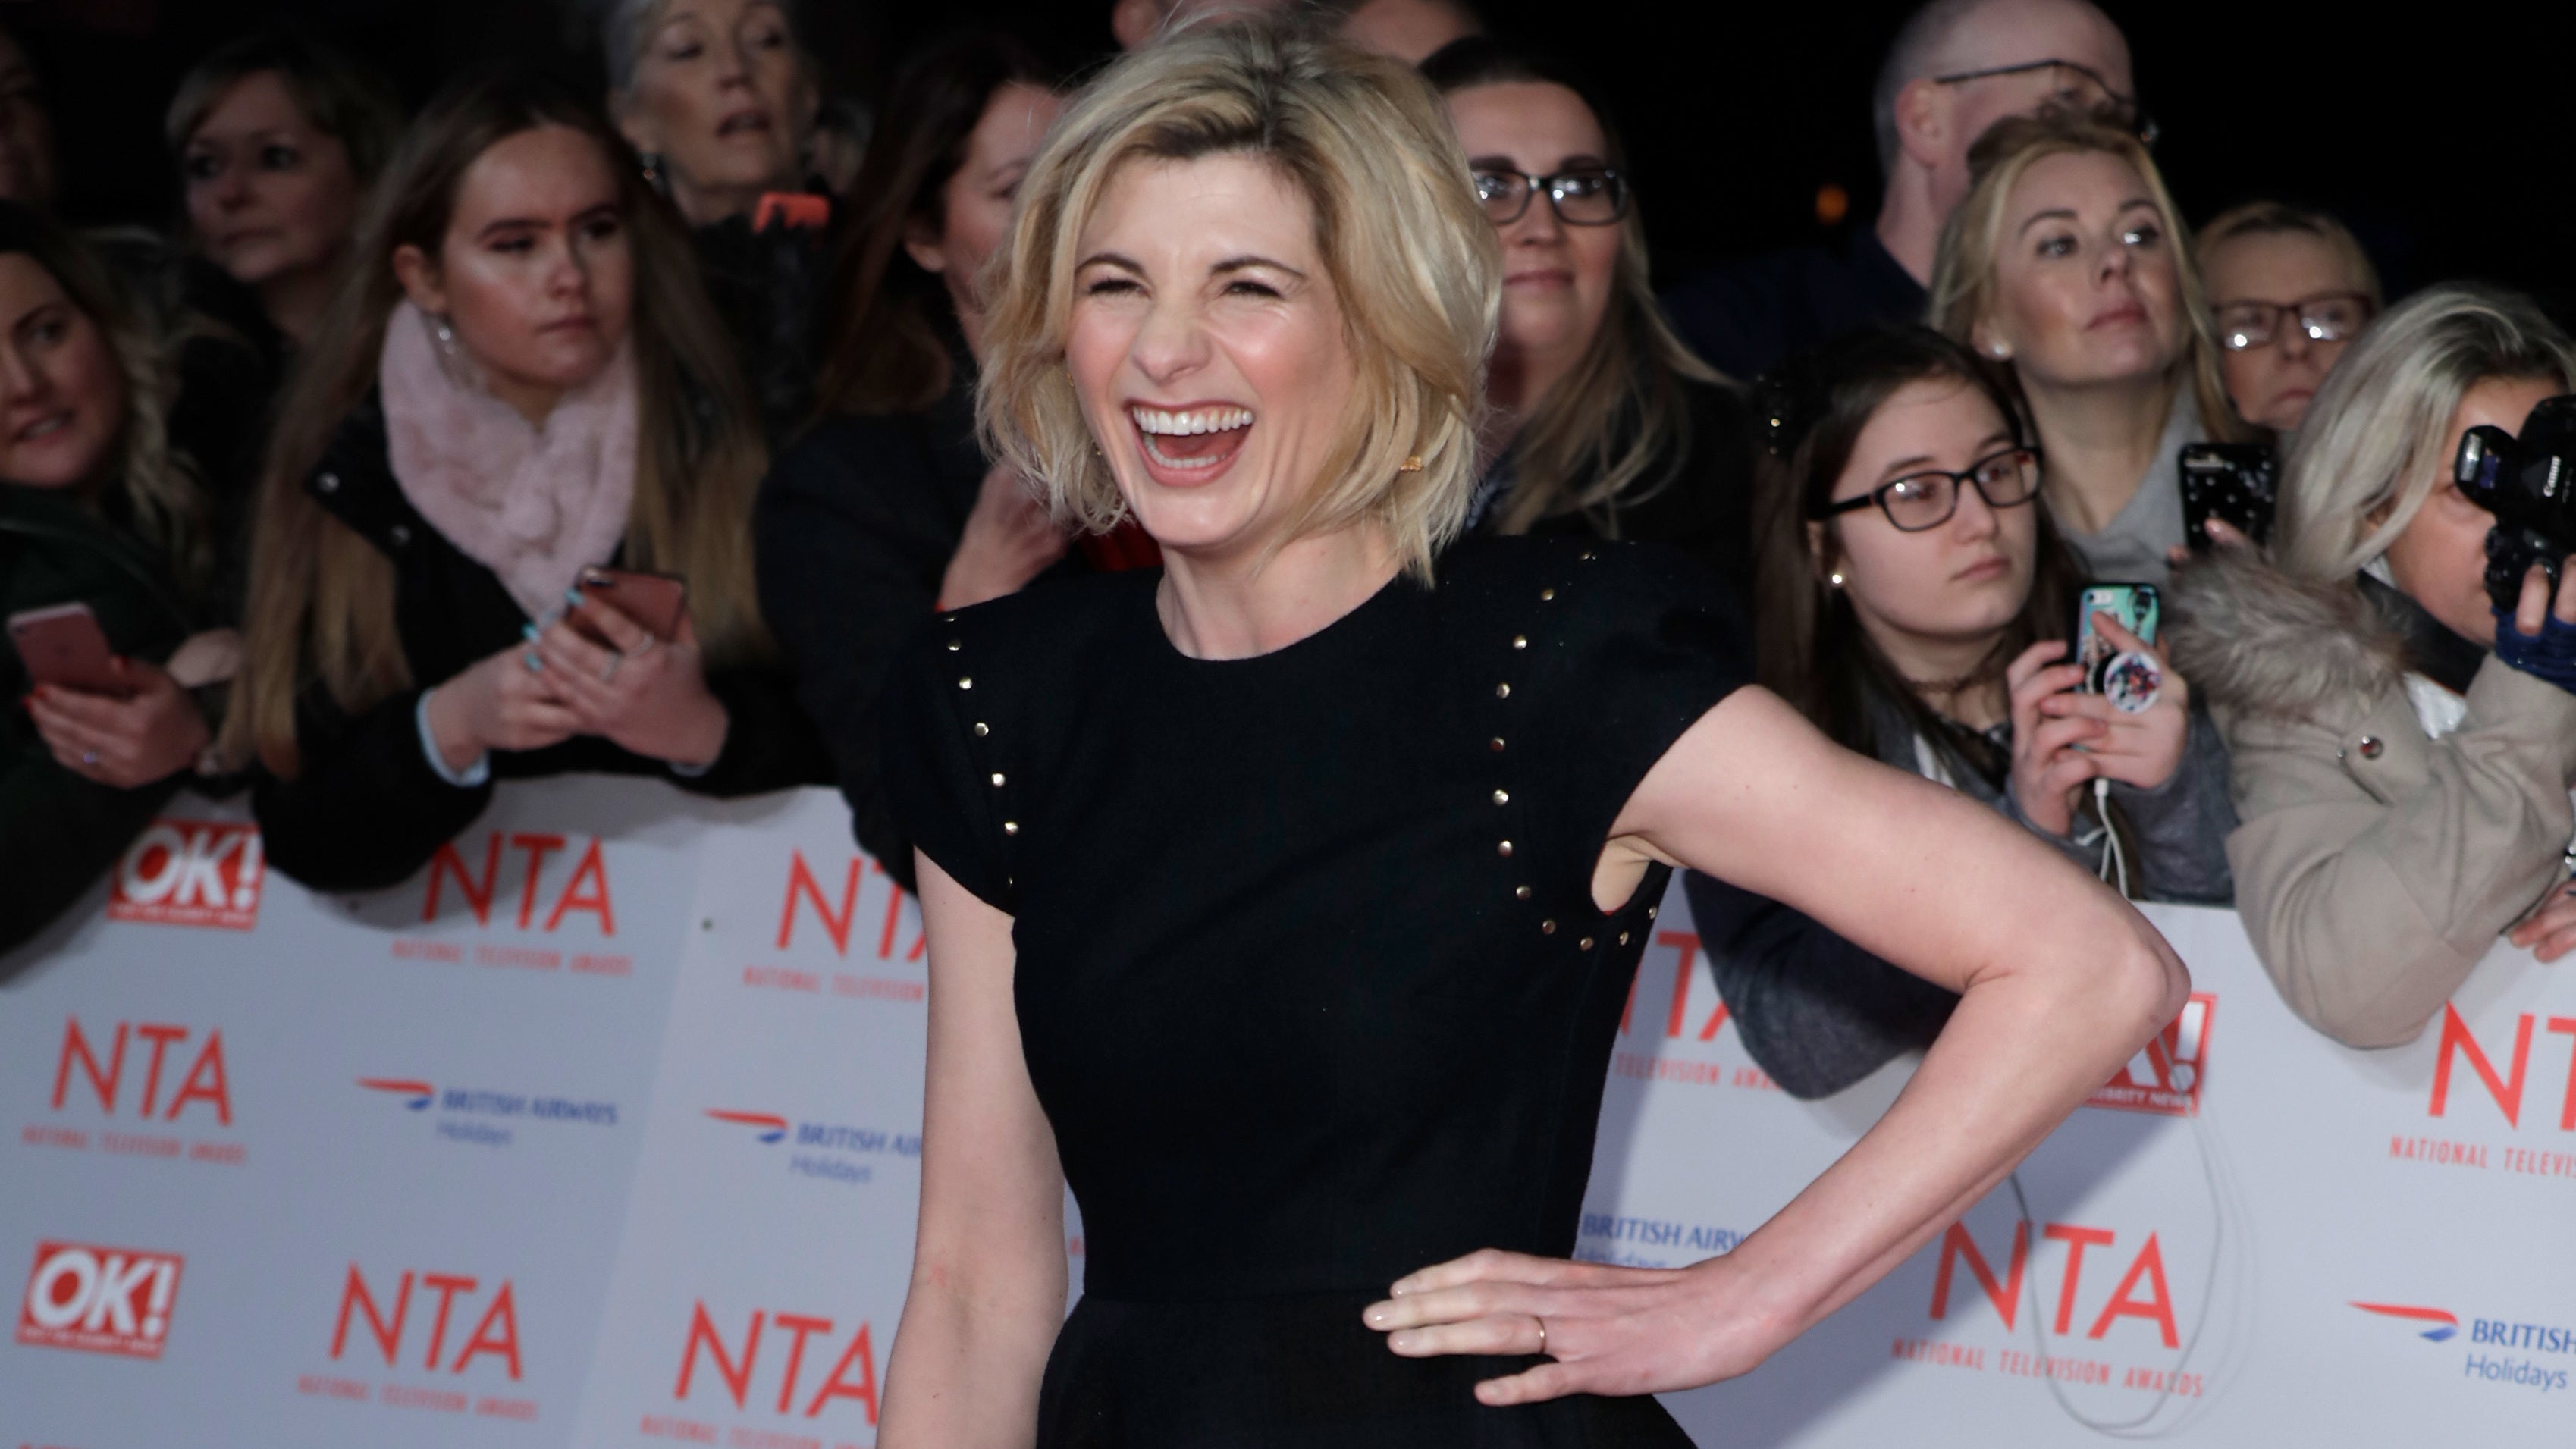 Jodie Whittaker Makes The Same Amount Of Money As Peter Capaldi Did For Doctor Who